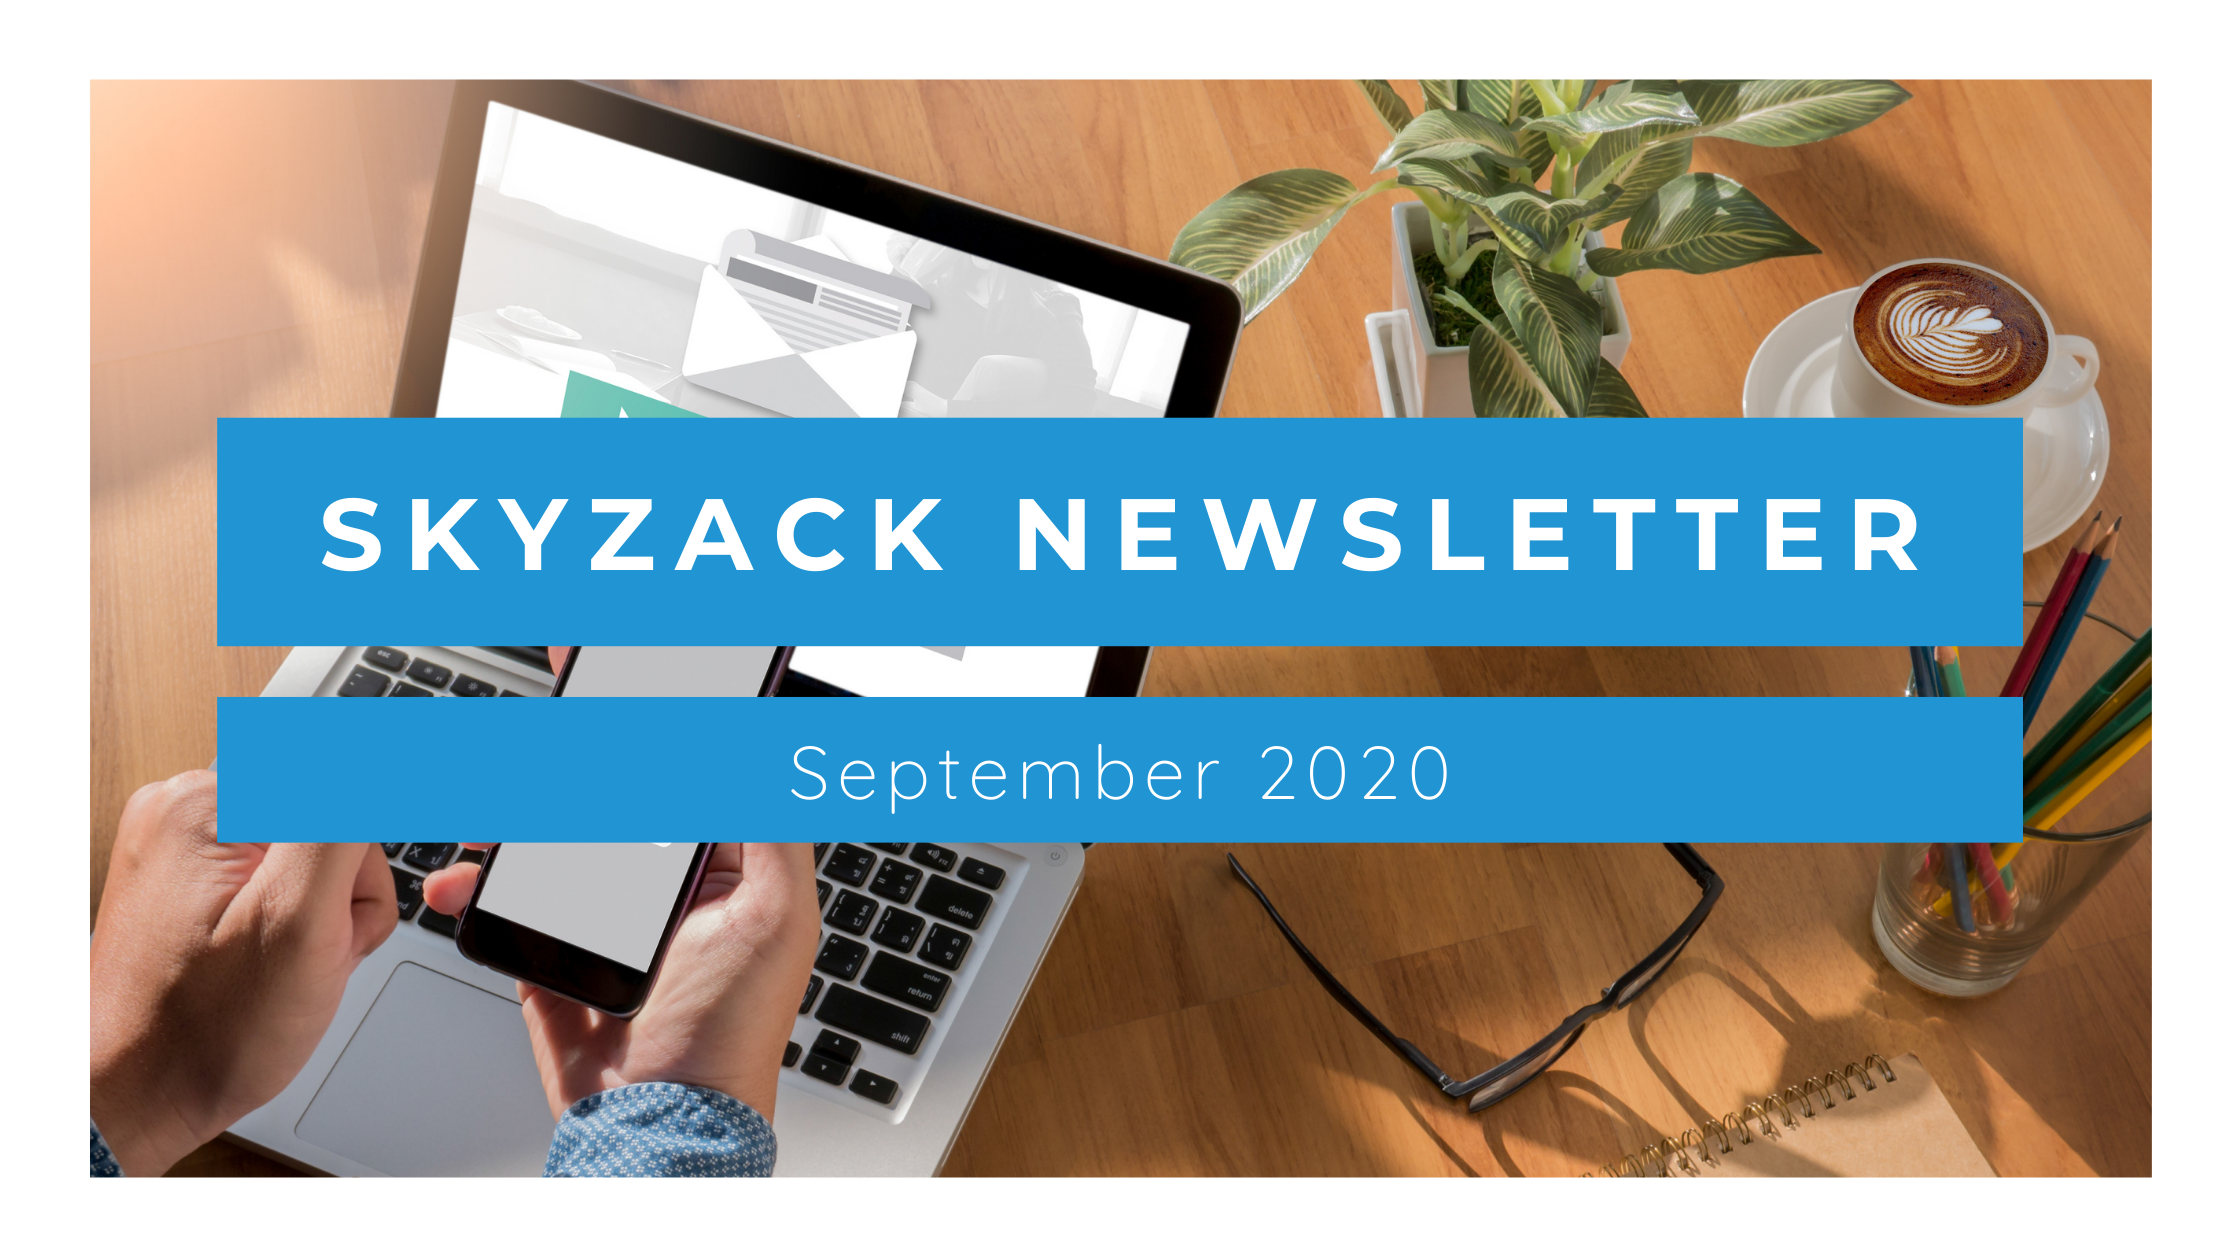 Skyzack Newsletter: September 2020